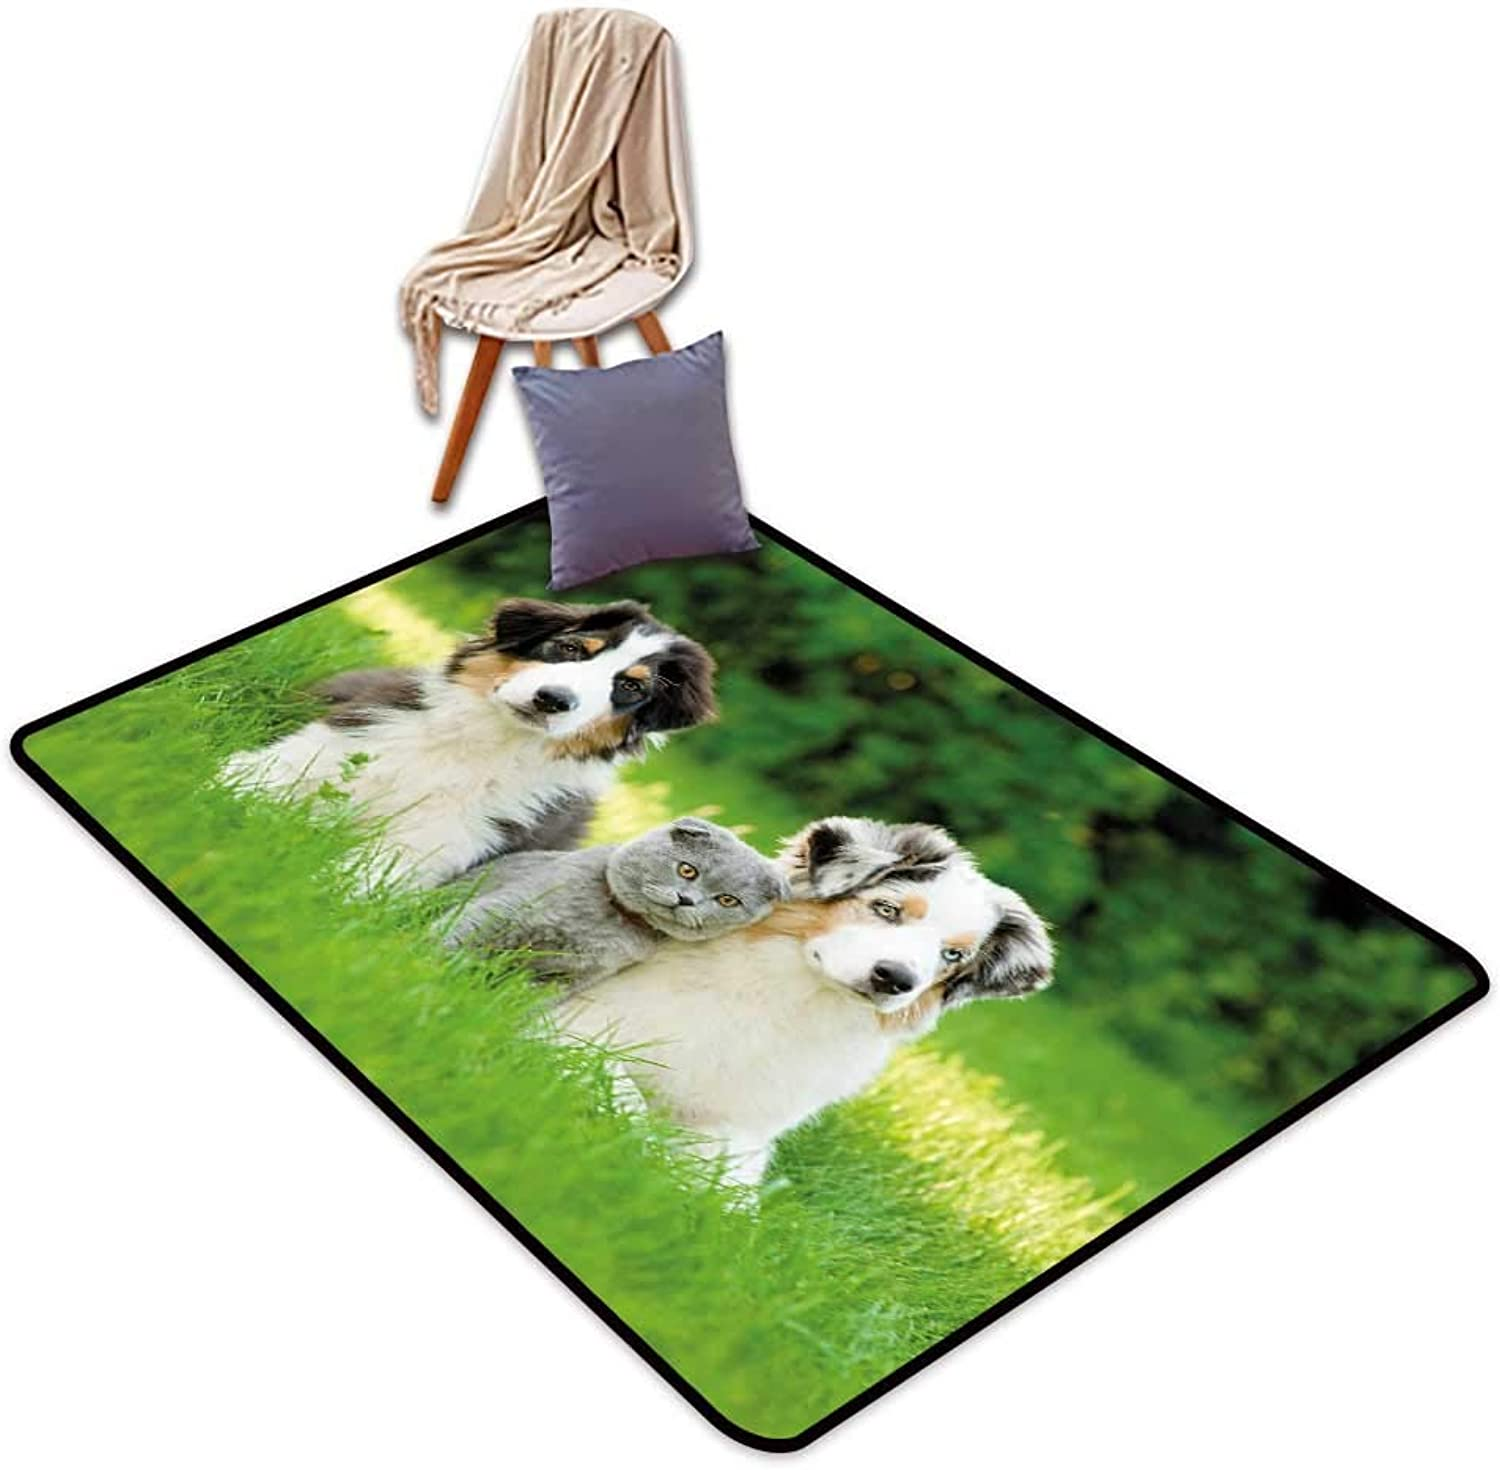 Entrance Door mat Dog Cute Pets Puppy Family in The Garden Australian Shepherds and A Cat Scenery W5'xL7' Suitable for Family